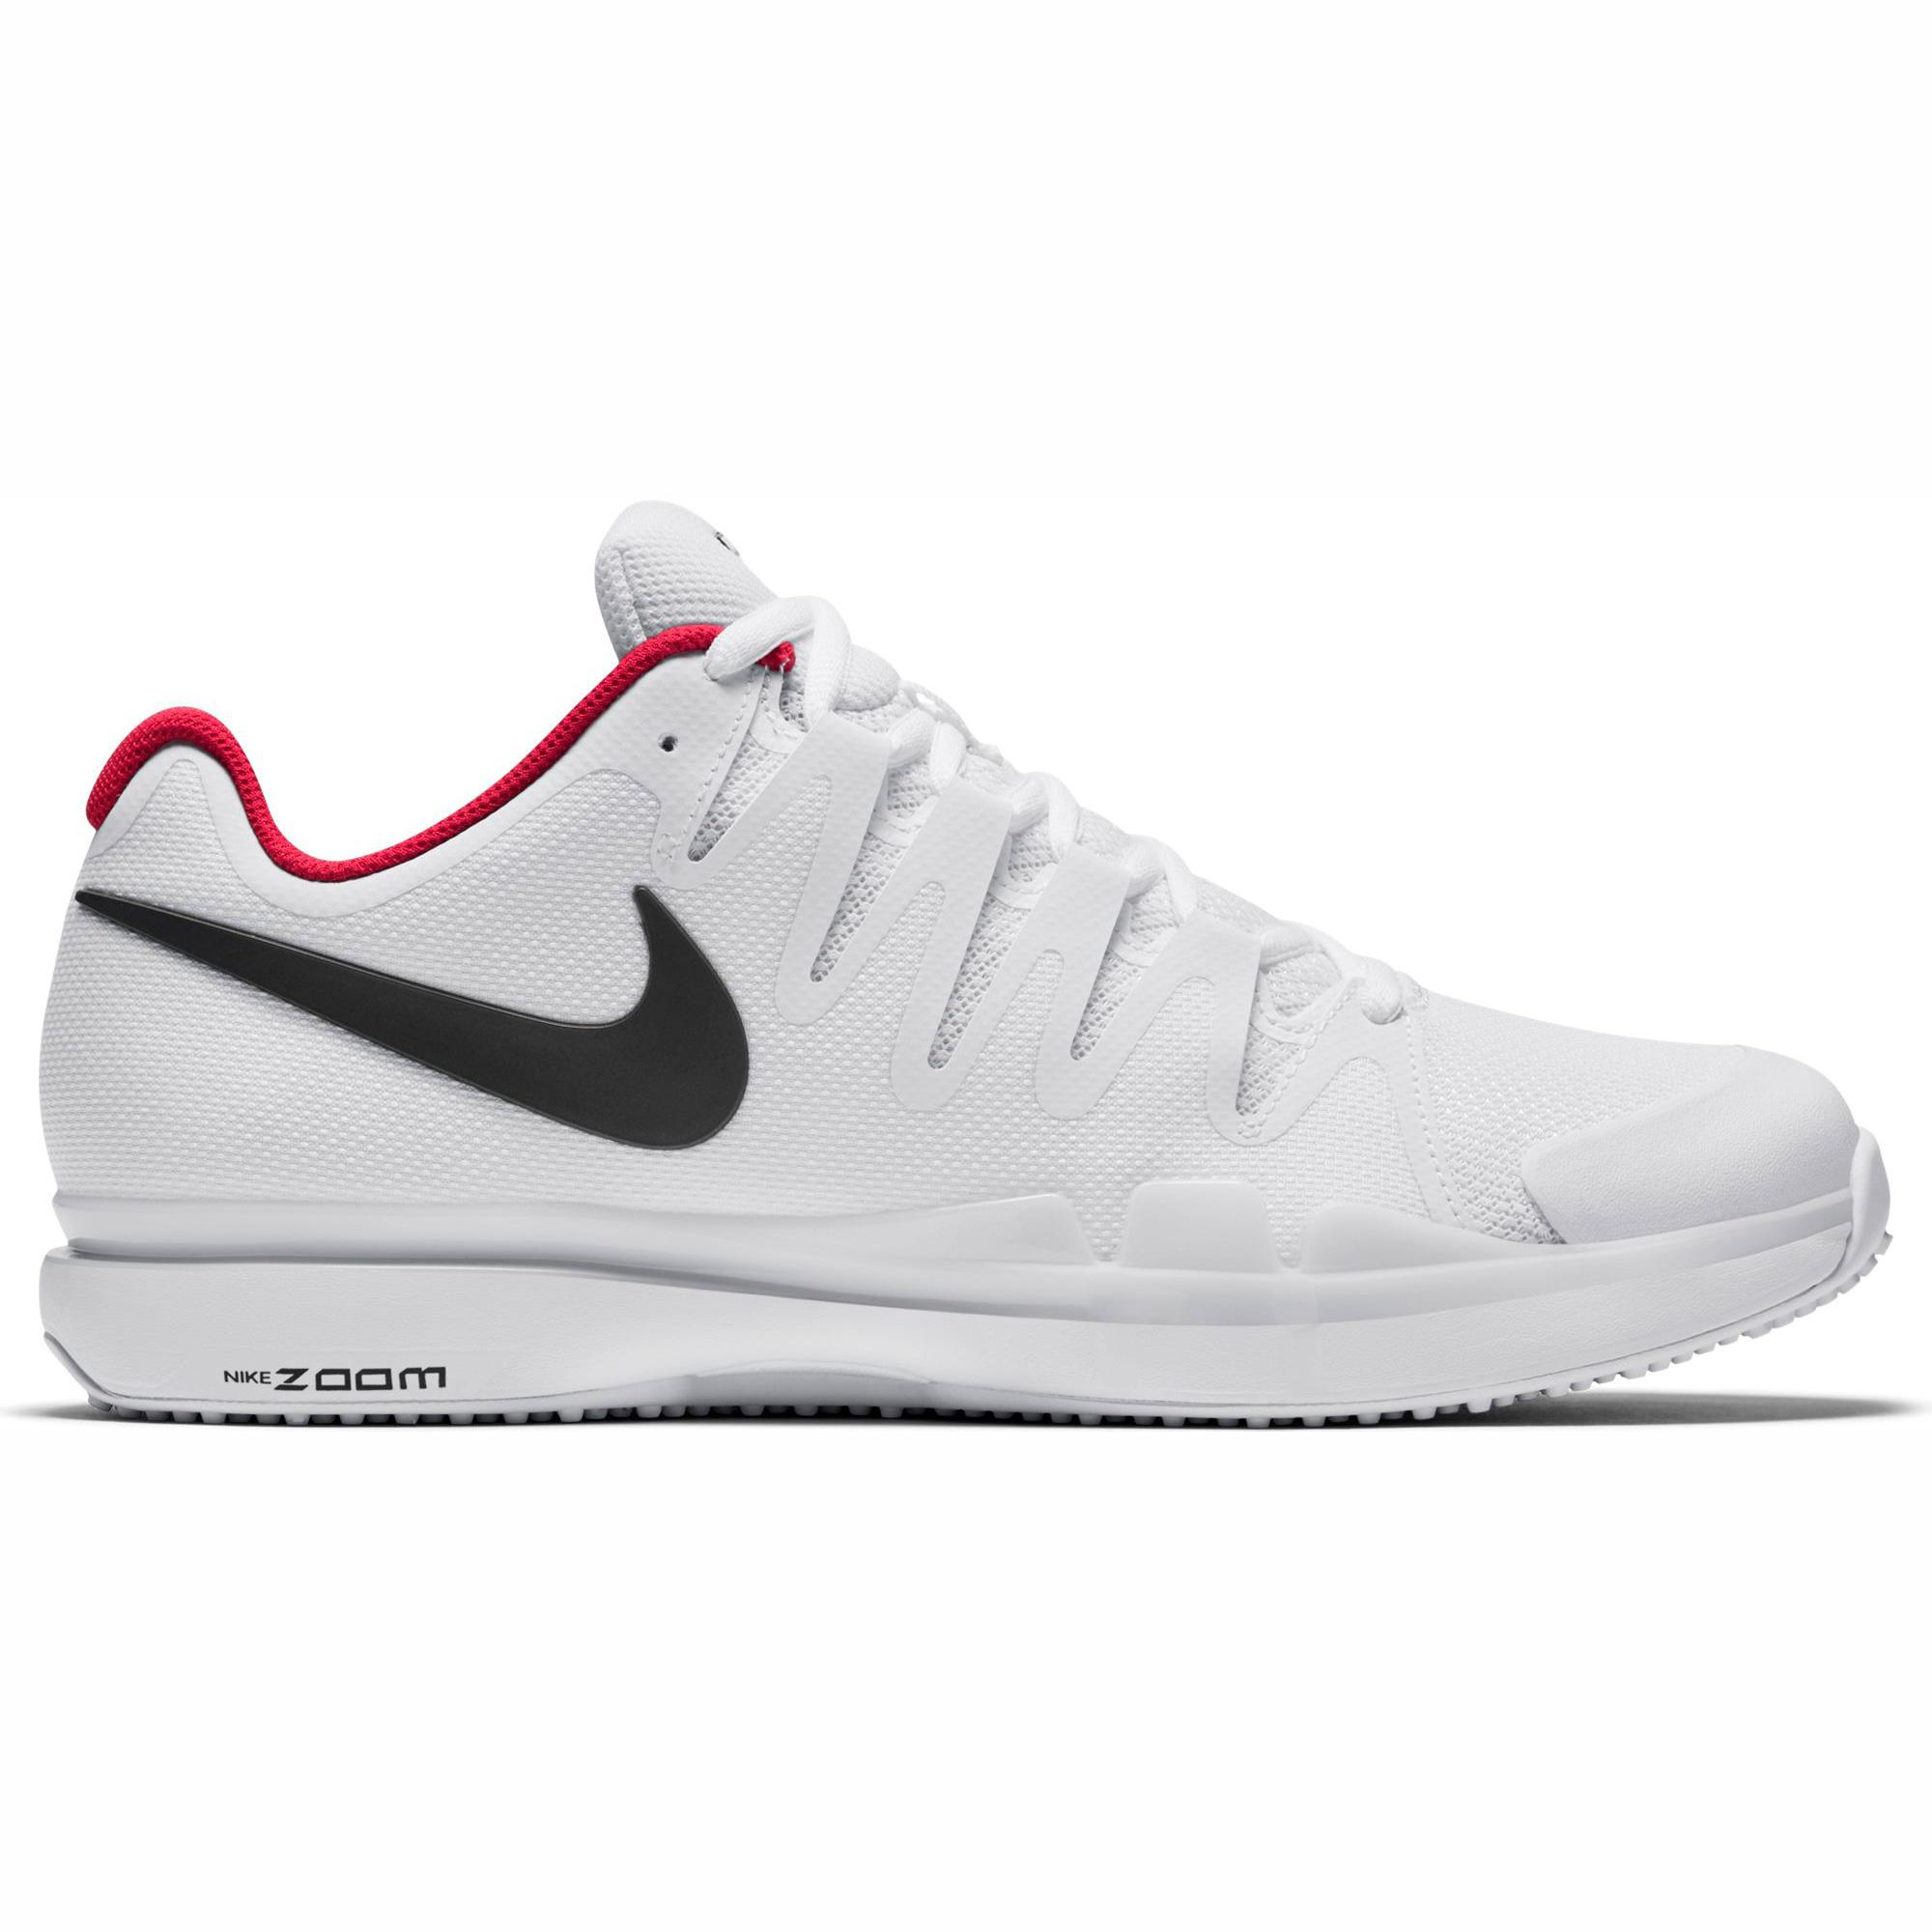 7d64eac19449 Nike Zoom Vapor 9.5 Tour Grass Court Tennis Shoes - White - Tennisnuts.com